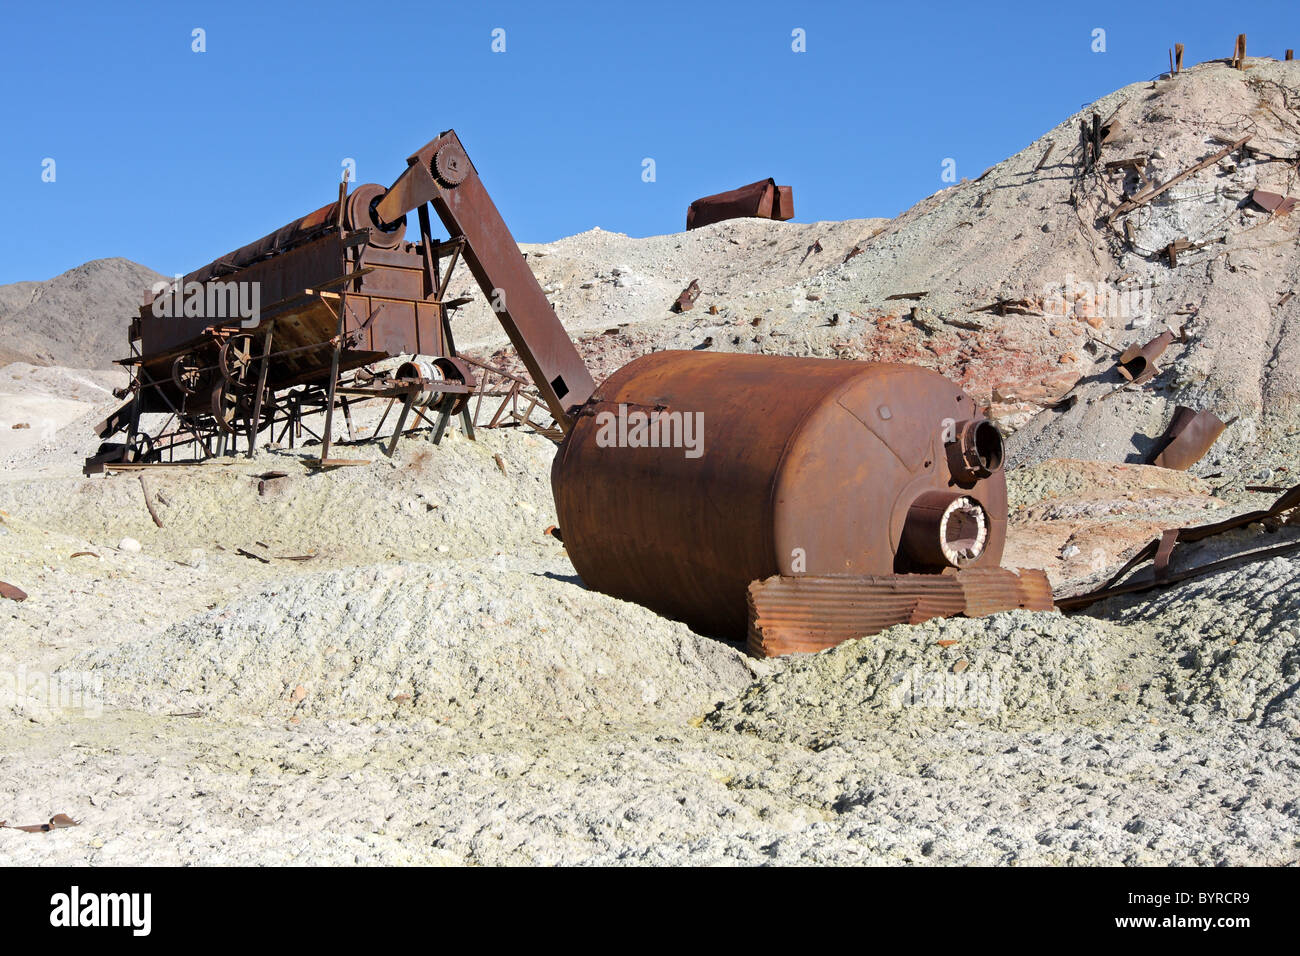 Abandoned mining equipment, Crater Sulfur Mine, near Death Valley National Park - Stock Image